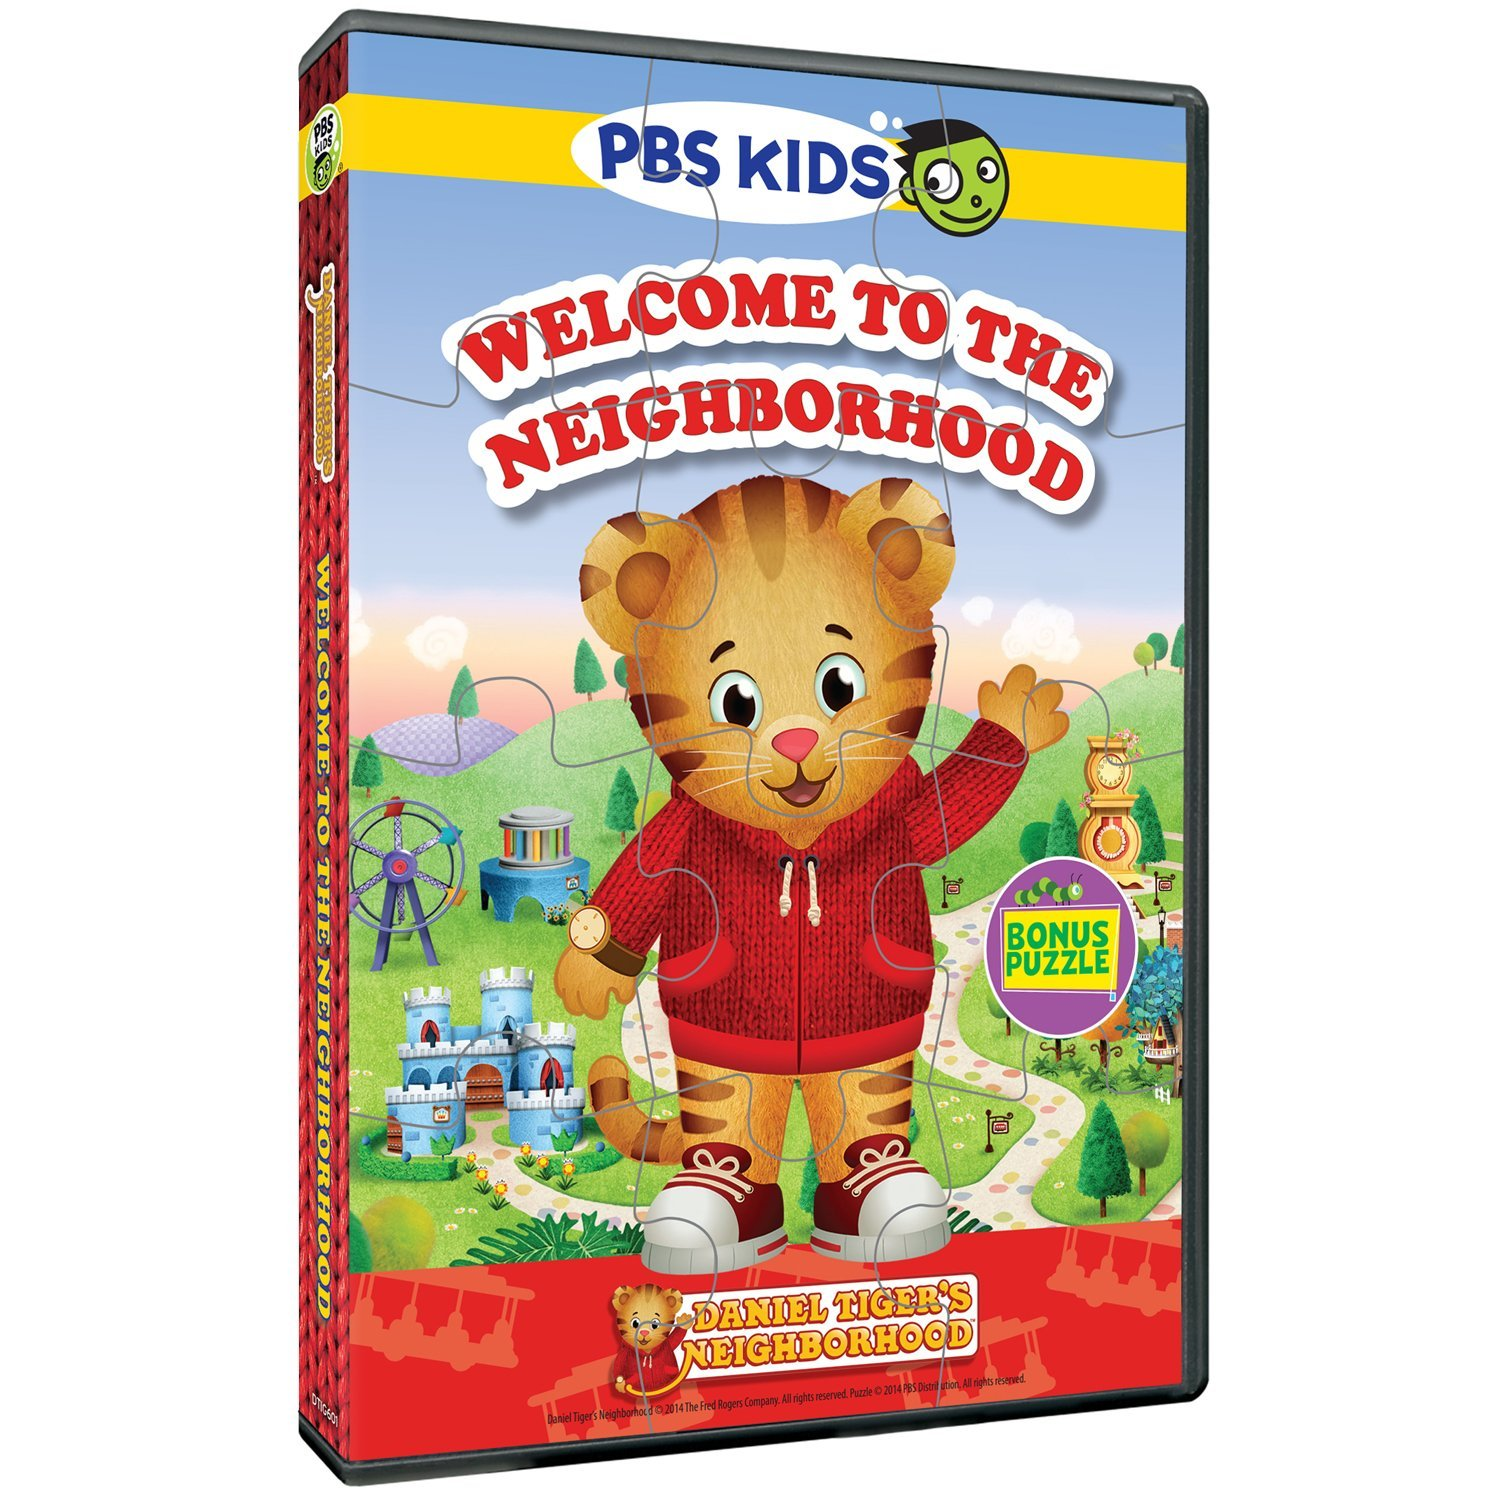 New to DVD from PBS Kids: Daniel Tiger's Neighborhood and Peg + Cat